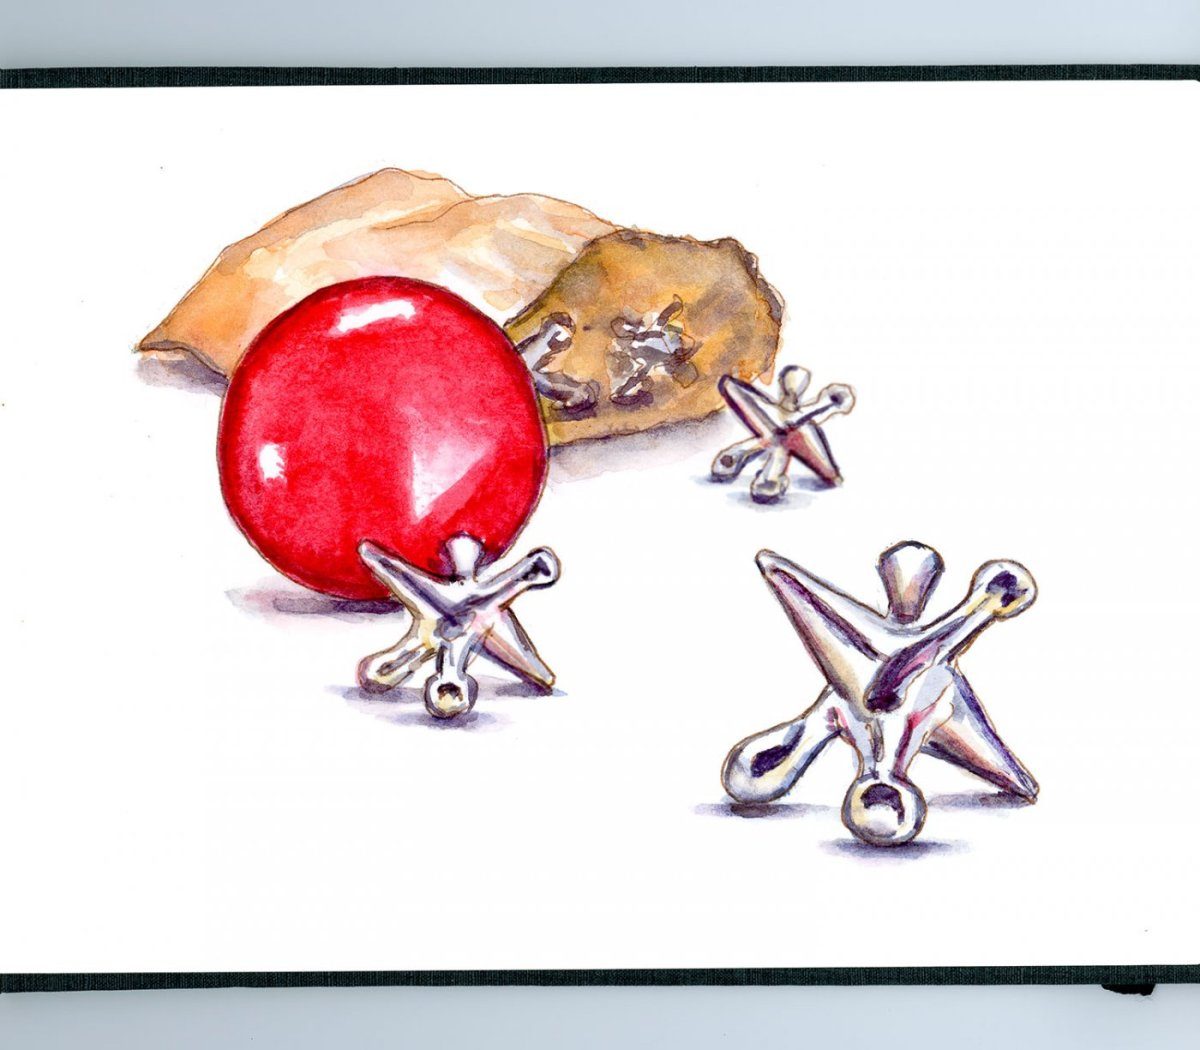 Day 7 - World Watercolor Month Playing Games Jacks - #WorldWatercolorMonth - Doodlewash